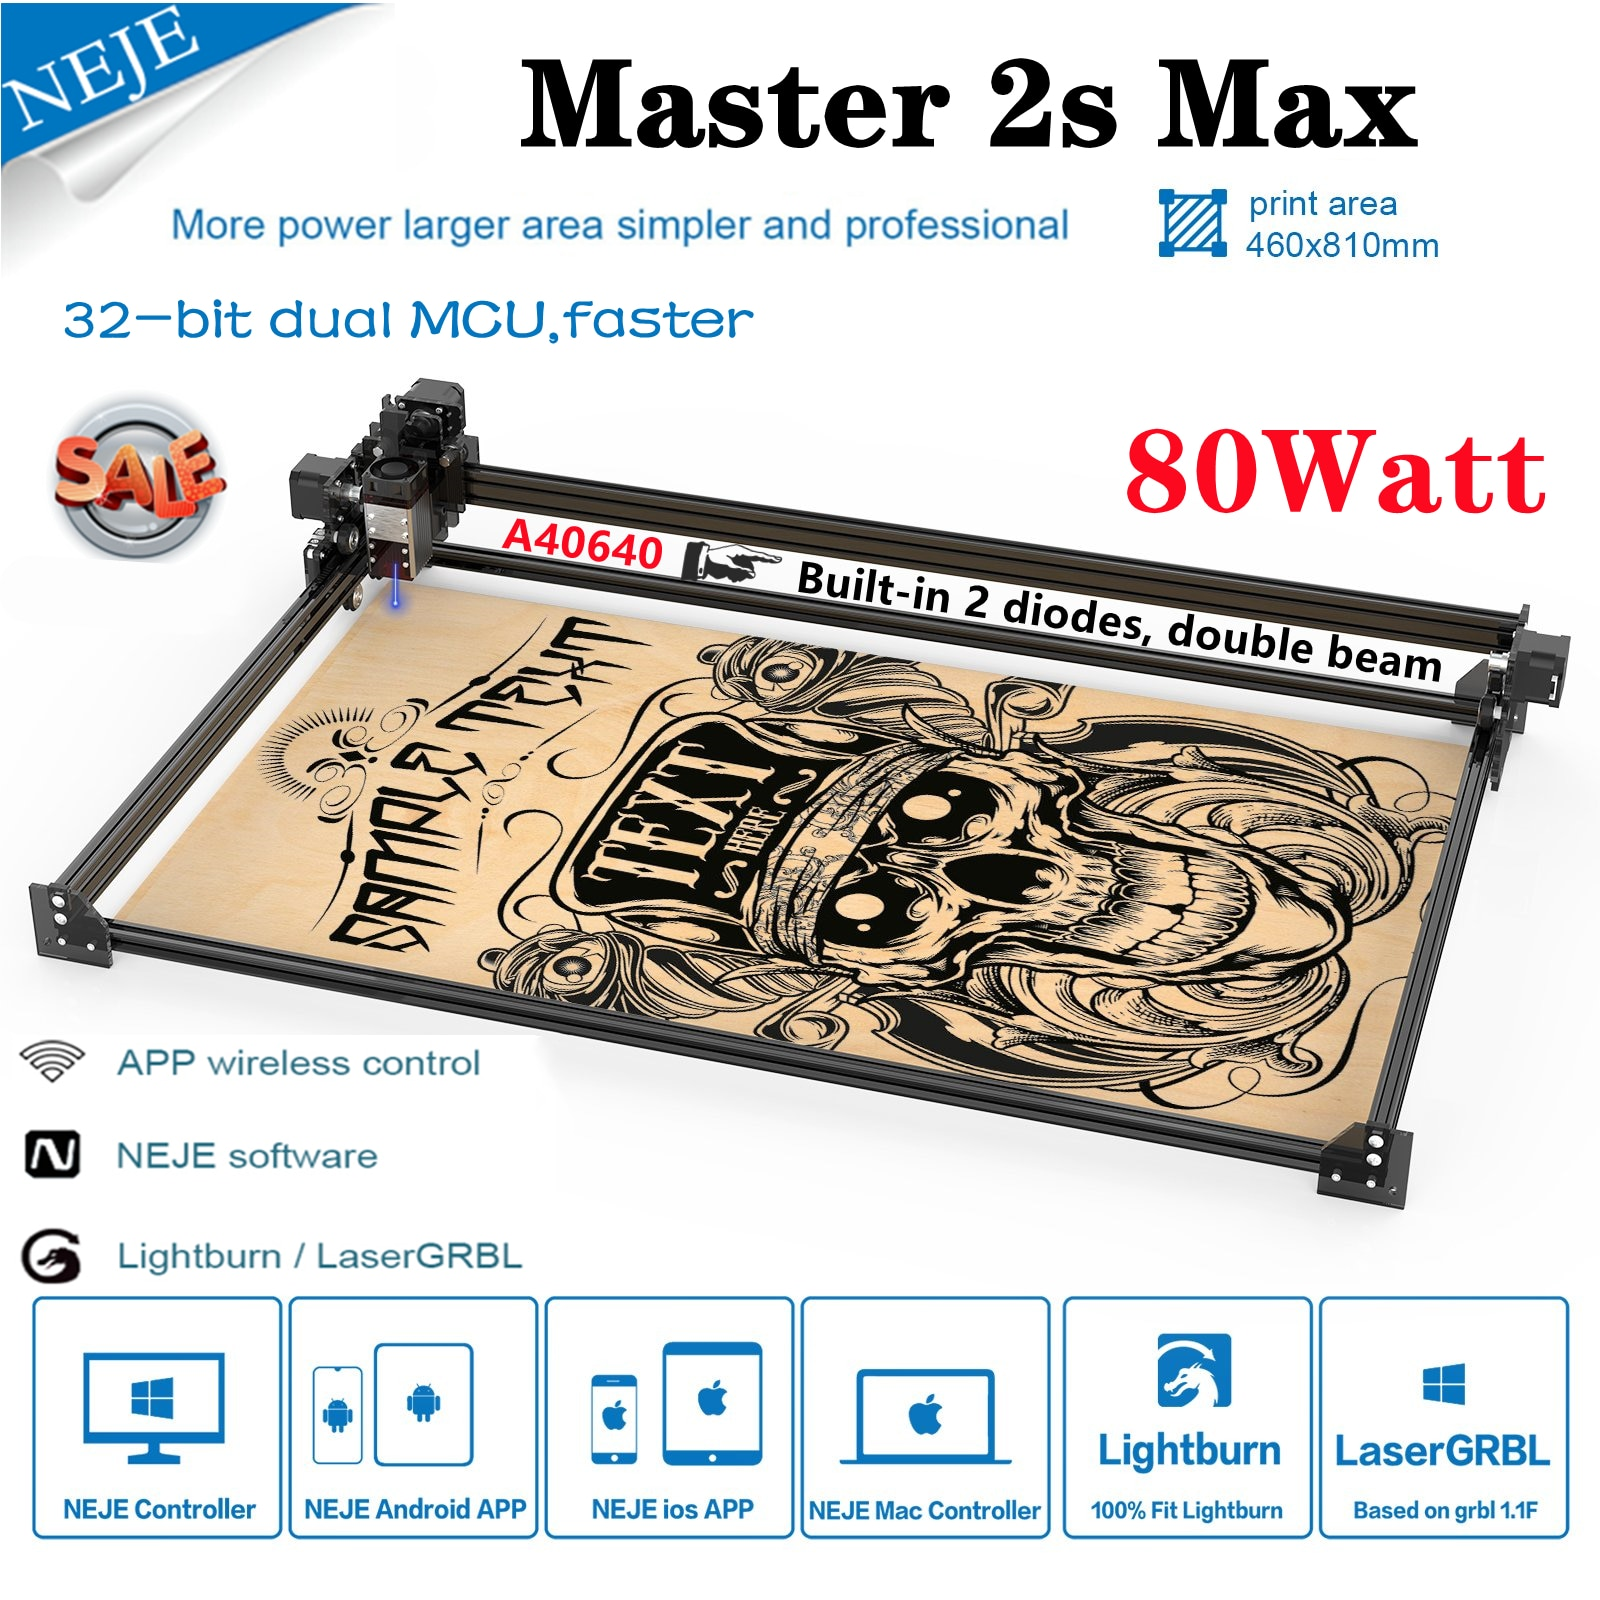 NEJE Master 2s Max 80W 2 Diodes CNC Router Laser Wood Engraver Cutting Cutter Lightburn LaserGRBL Bluetooth App Control Printer